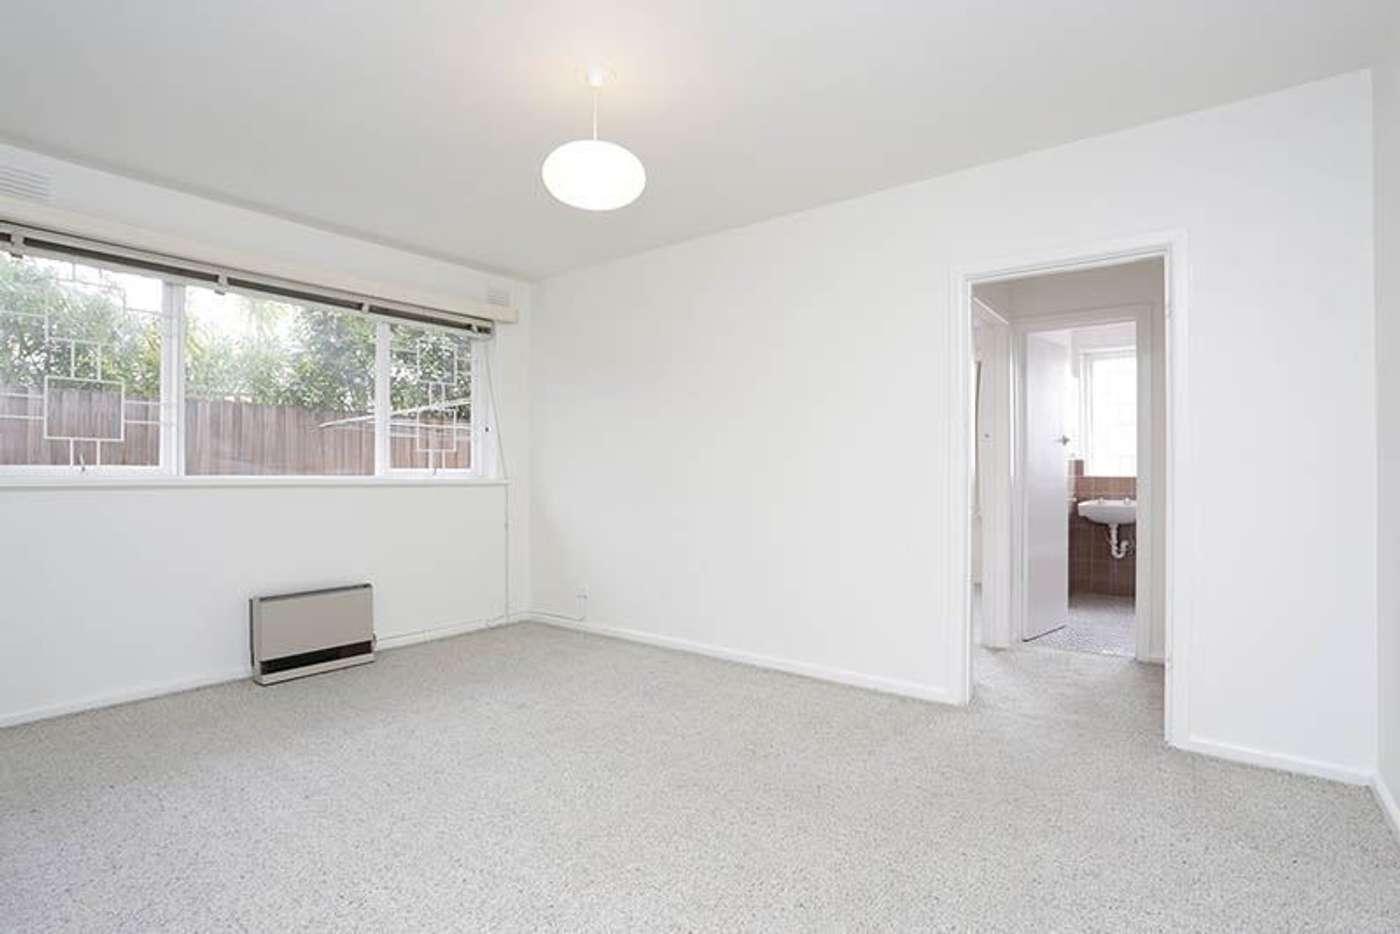 Main view of Homely apartment listing, 2/63 Osborne Street, South Yarra VIC 3141